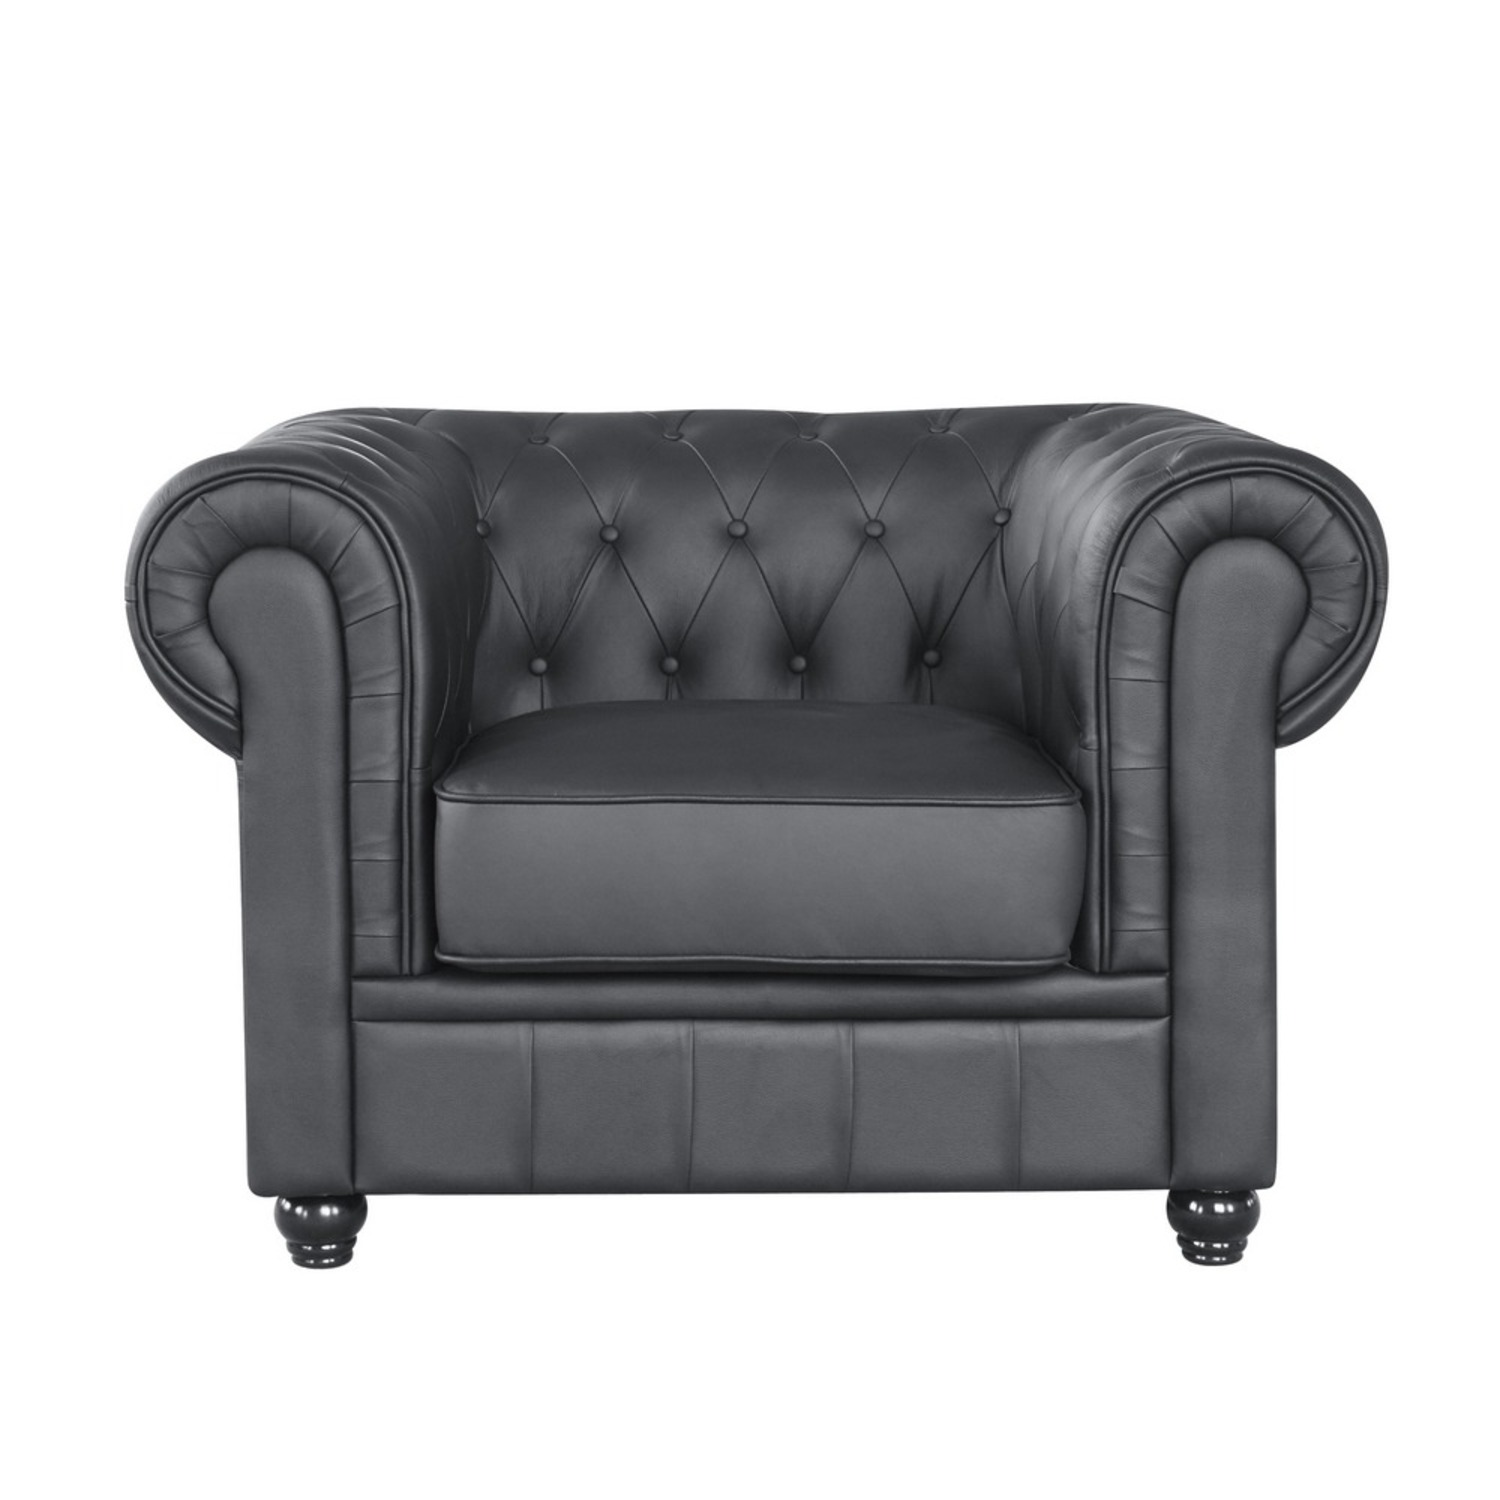 Modern Chair In Soft Black Leatherette - image-5